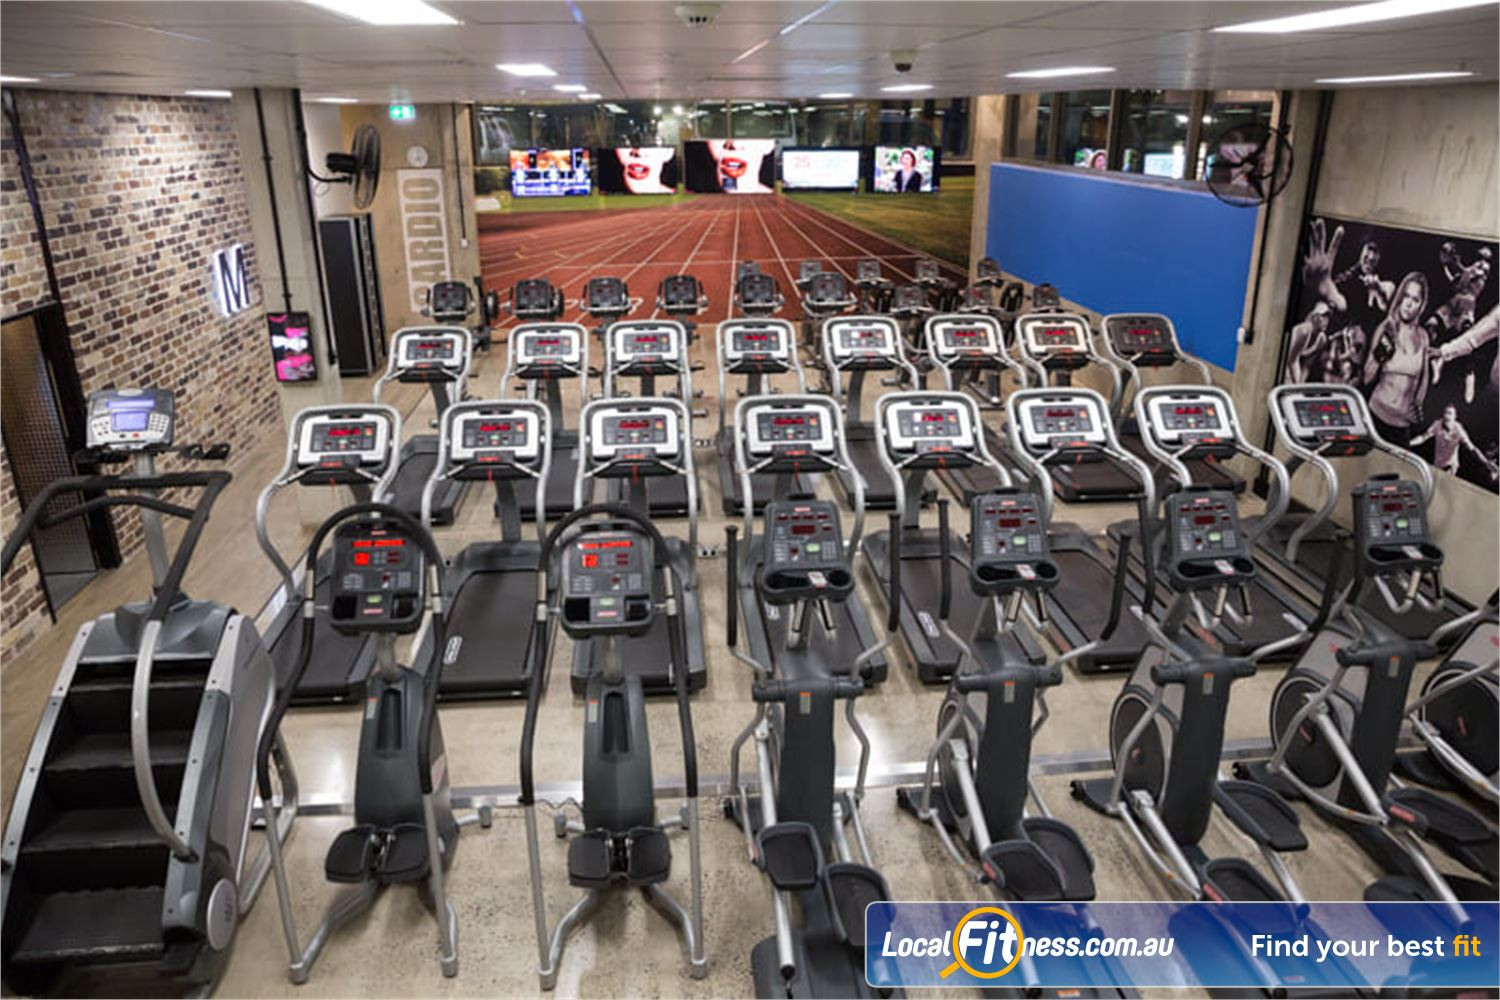 Fit n Fast Near Greenfield Park Our Wetherill Park gym includes rows and rows of cardio area.